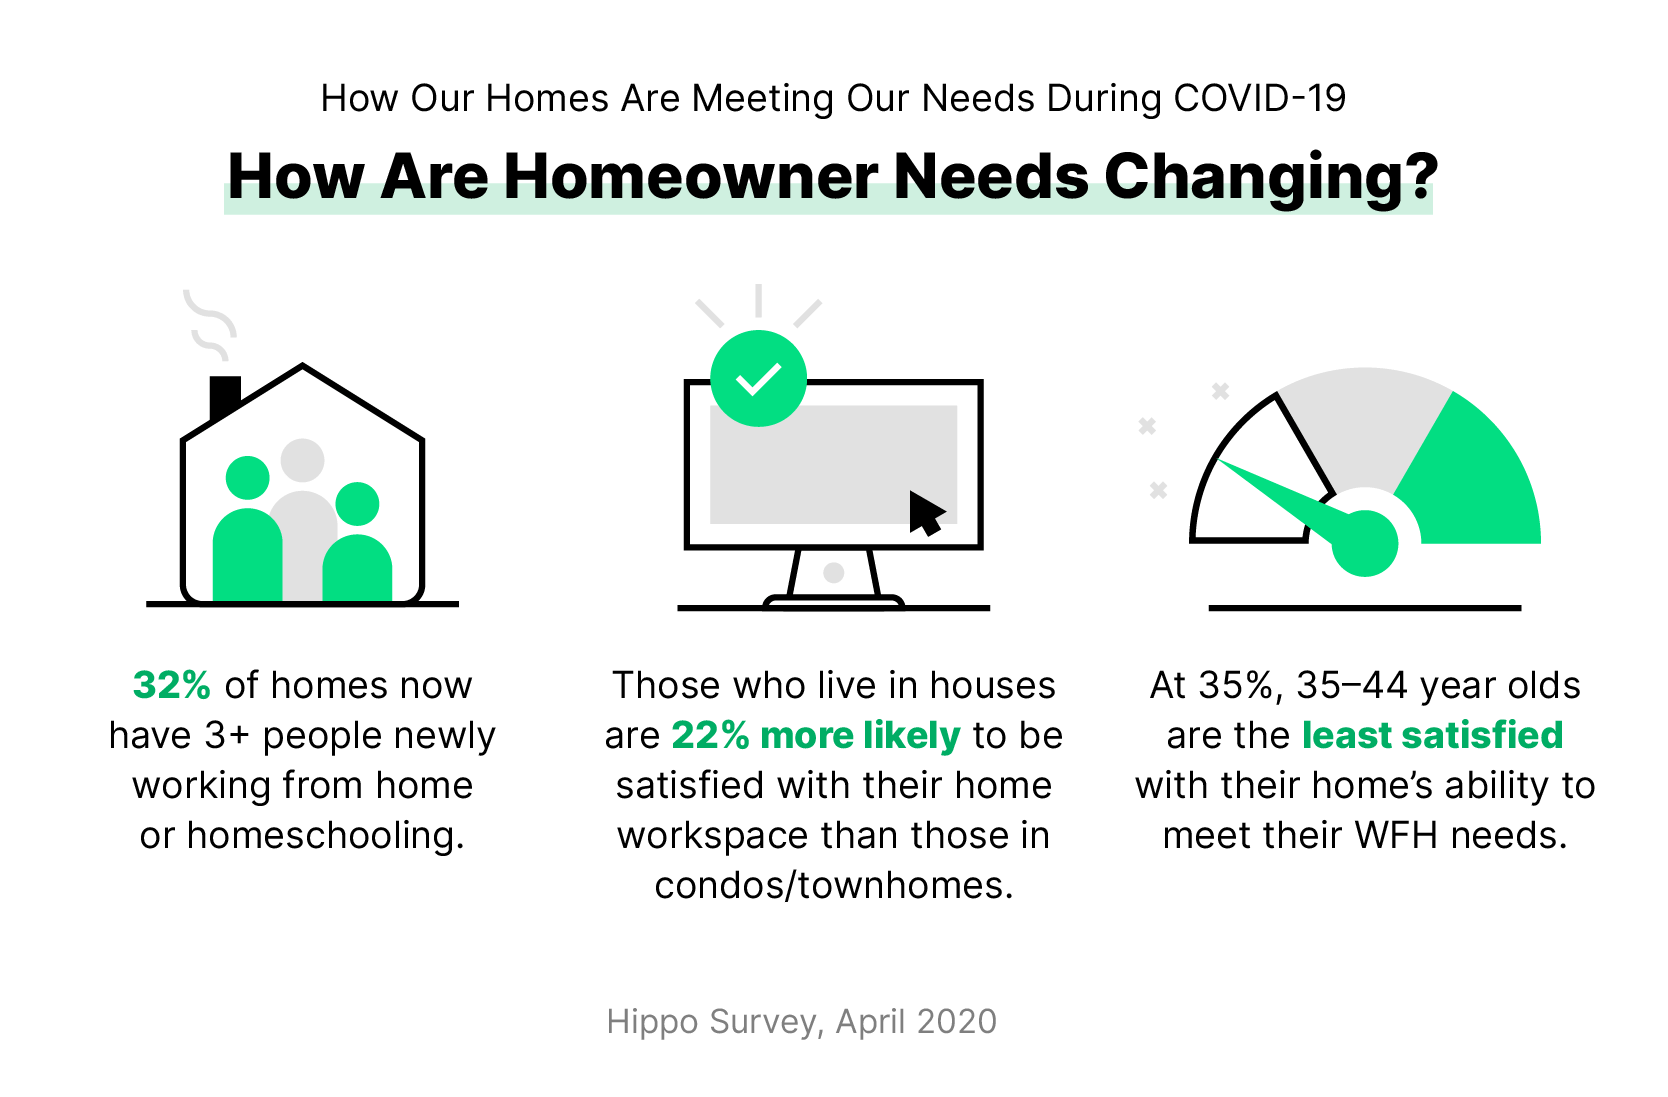 Are homeowner needs changing?